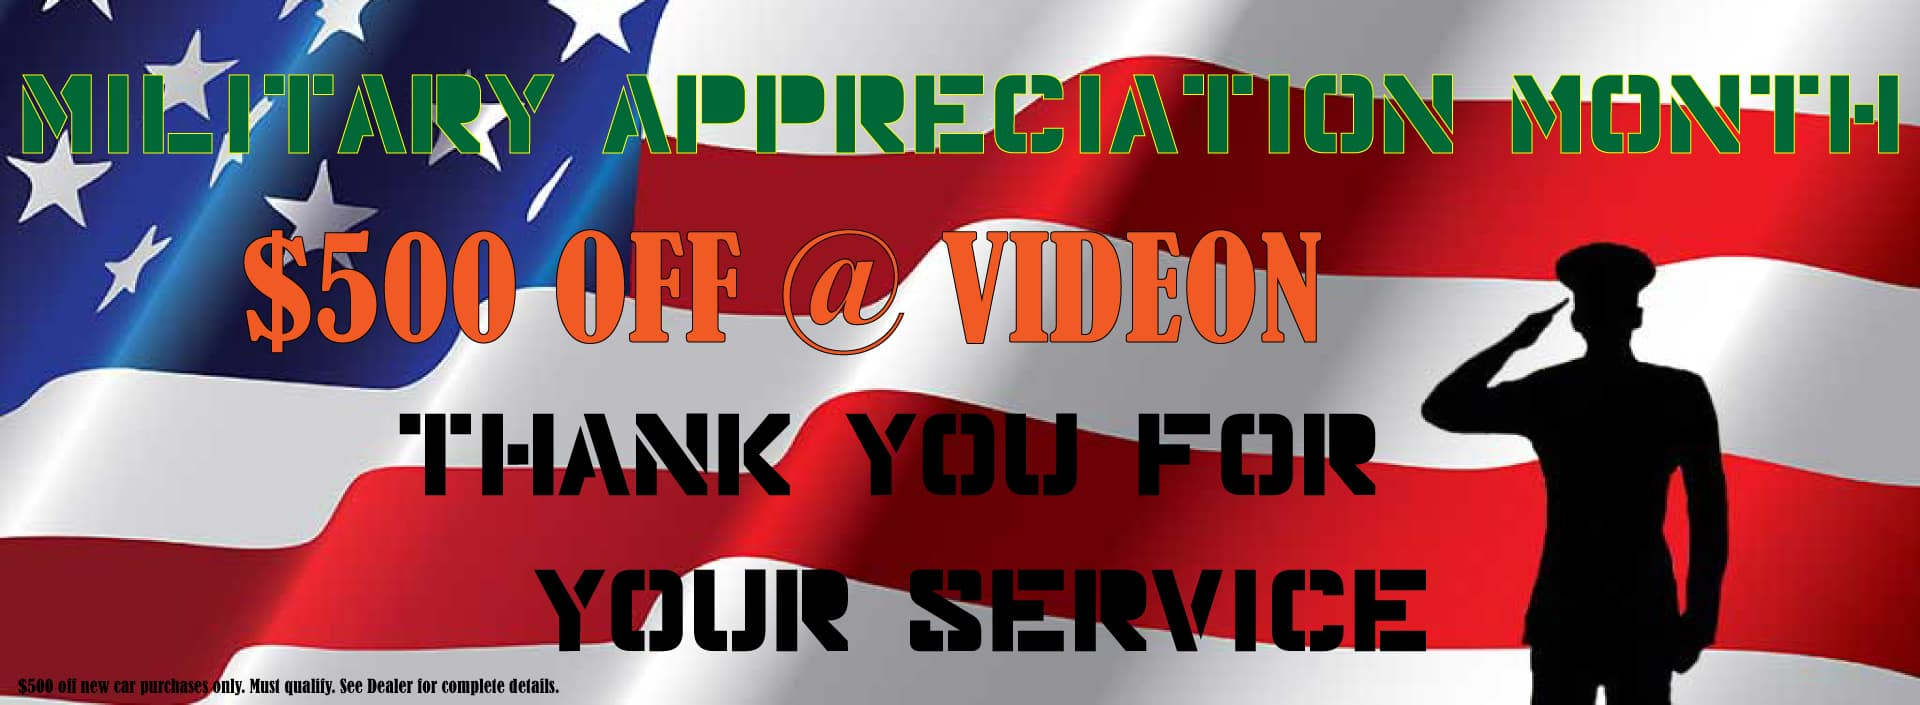 Military Appreciation Month at Videon